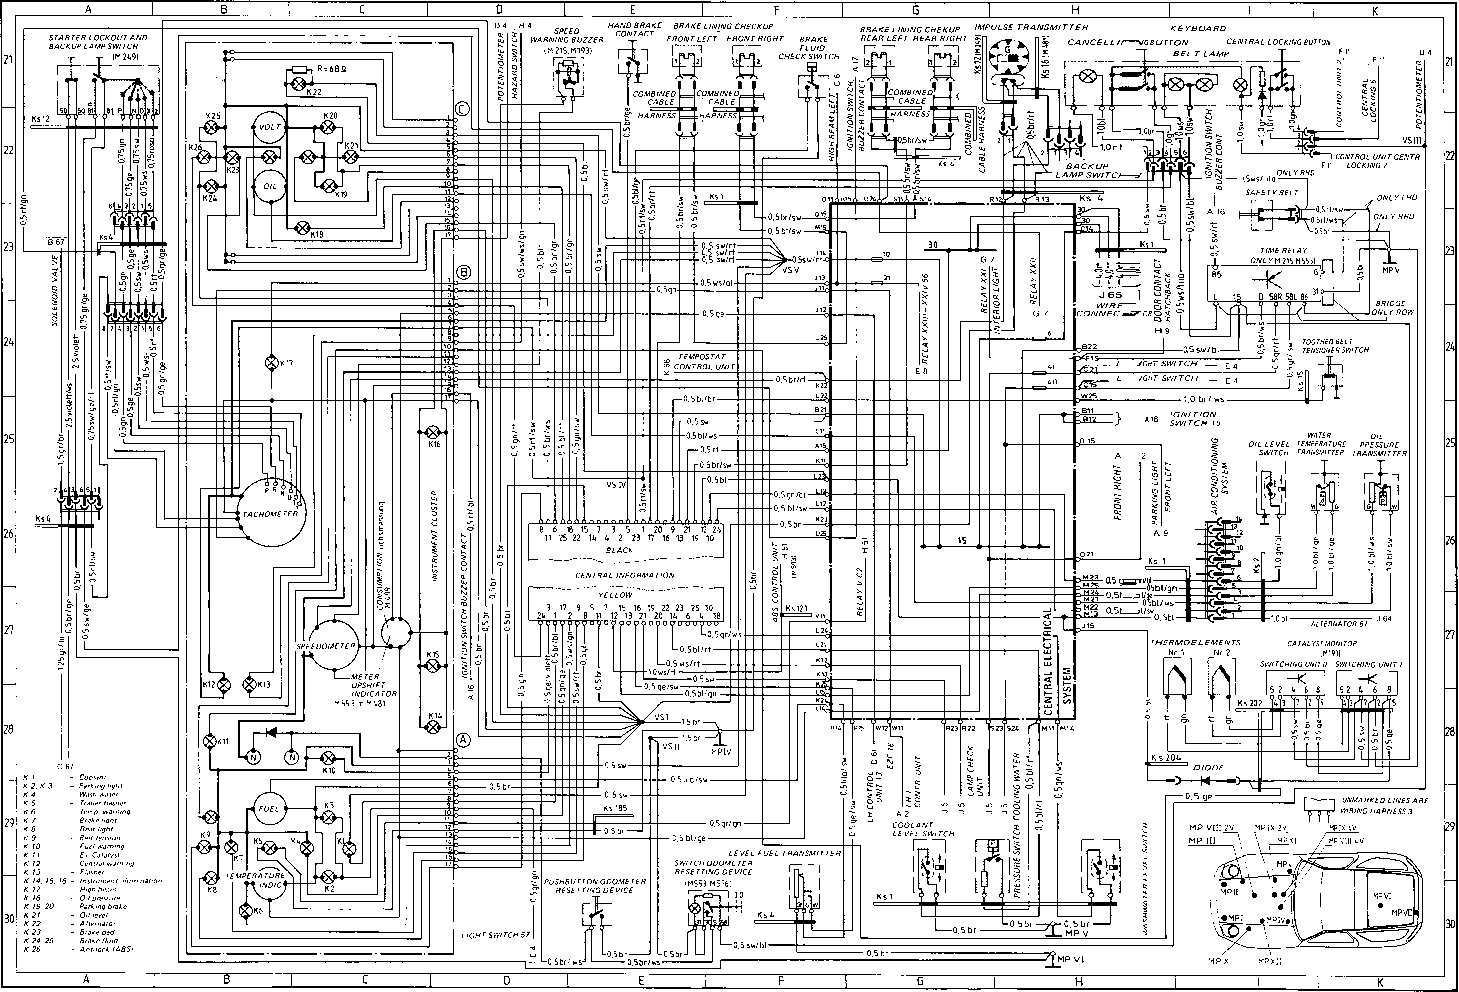 DIAGRAM] 1987 Porsche Wiring Diagram FULL Version HD Quality Wiring Diagram  - MANZ-DIAGRAM.MORNINGKISS.FRDiagram Database